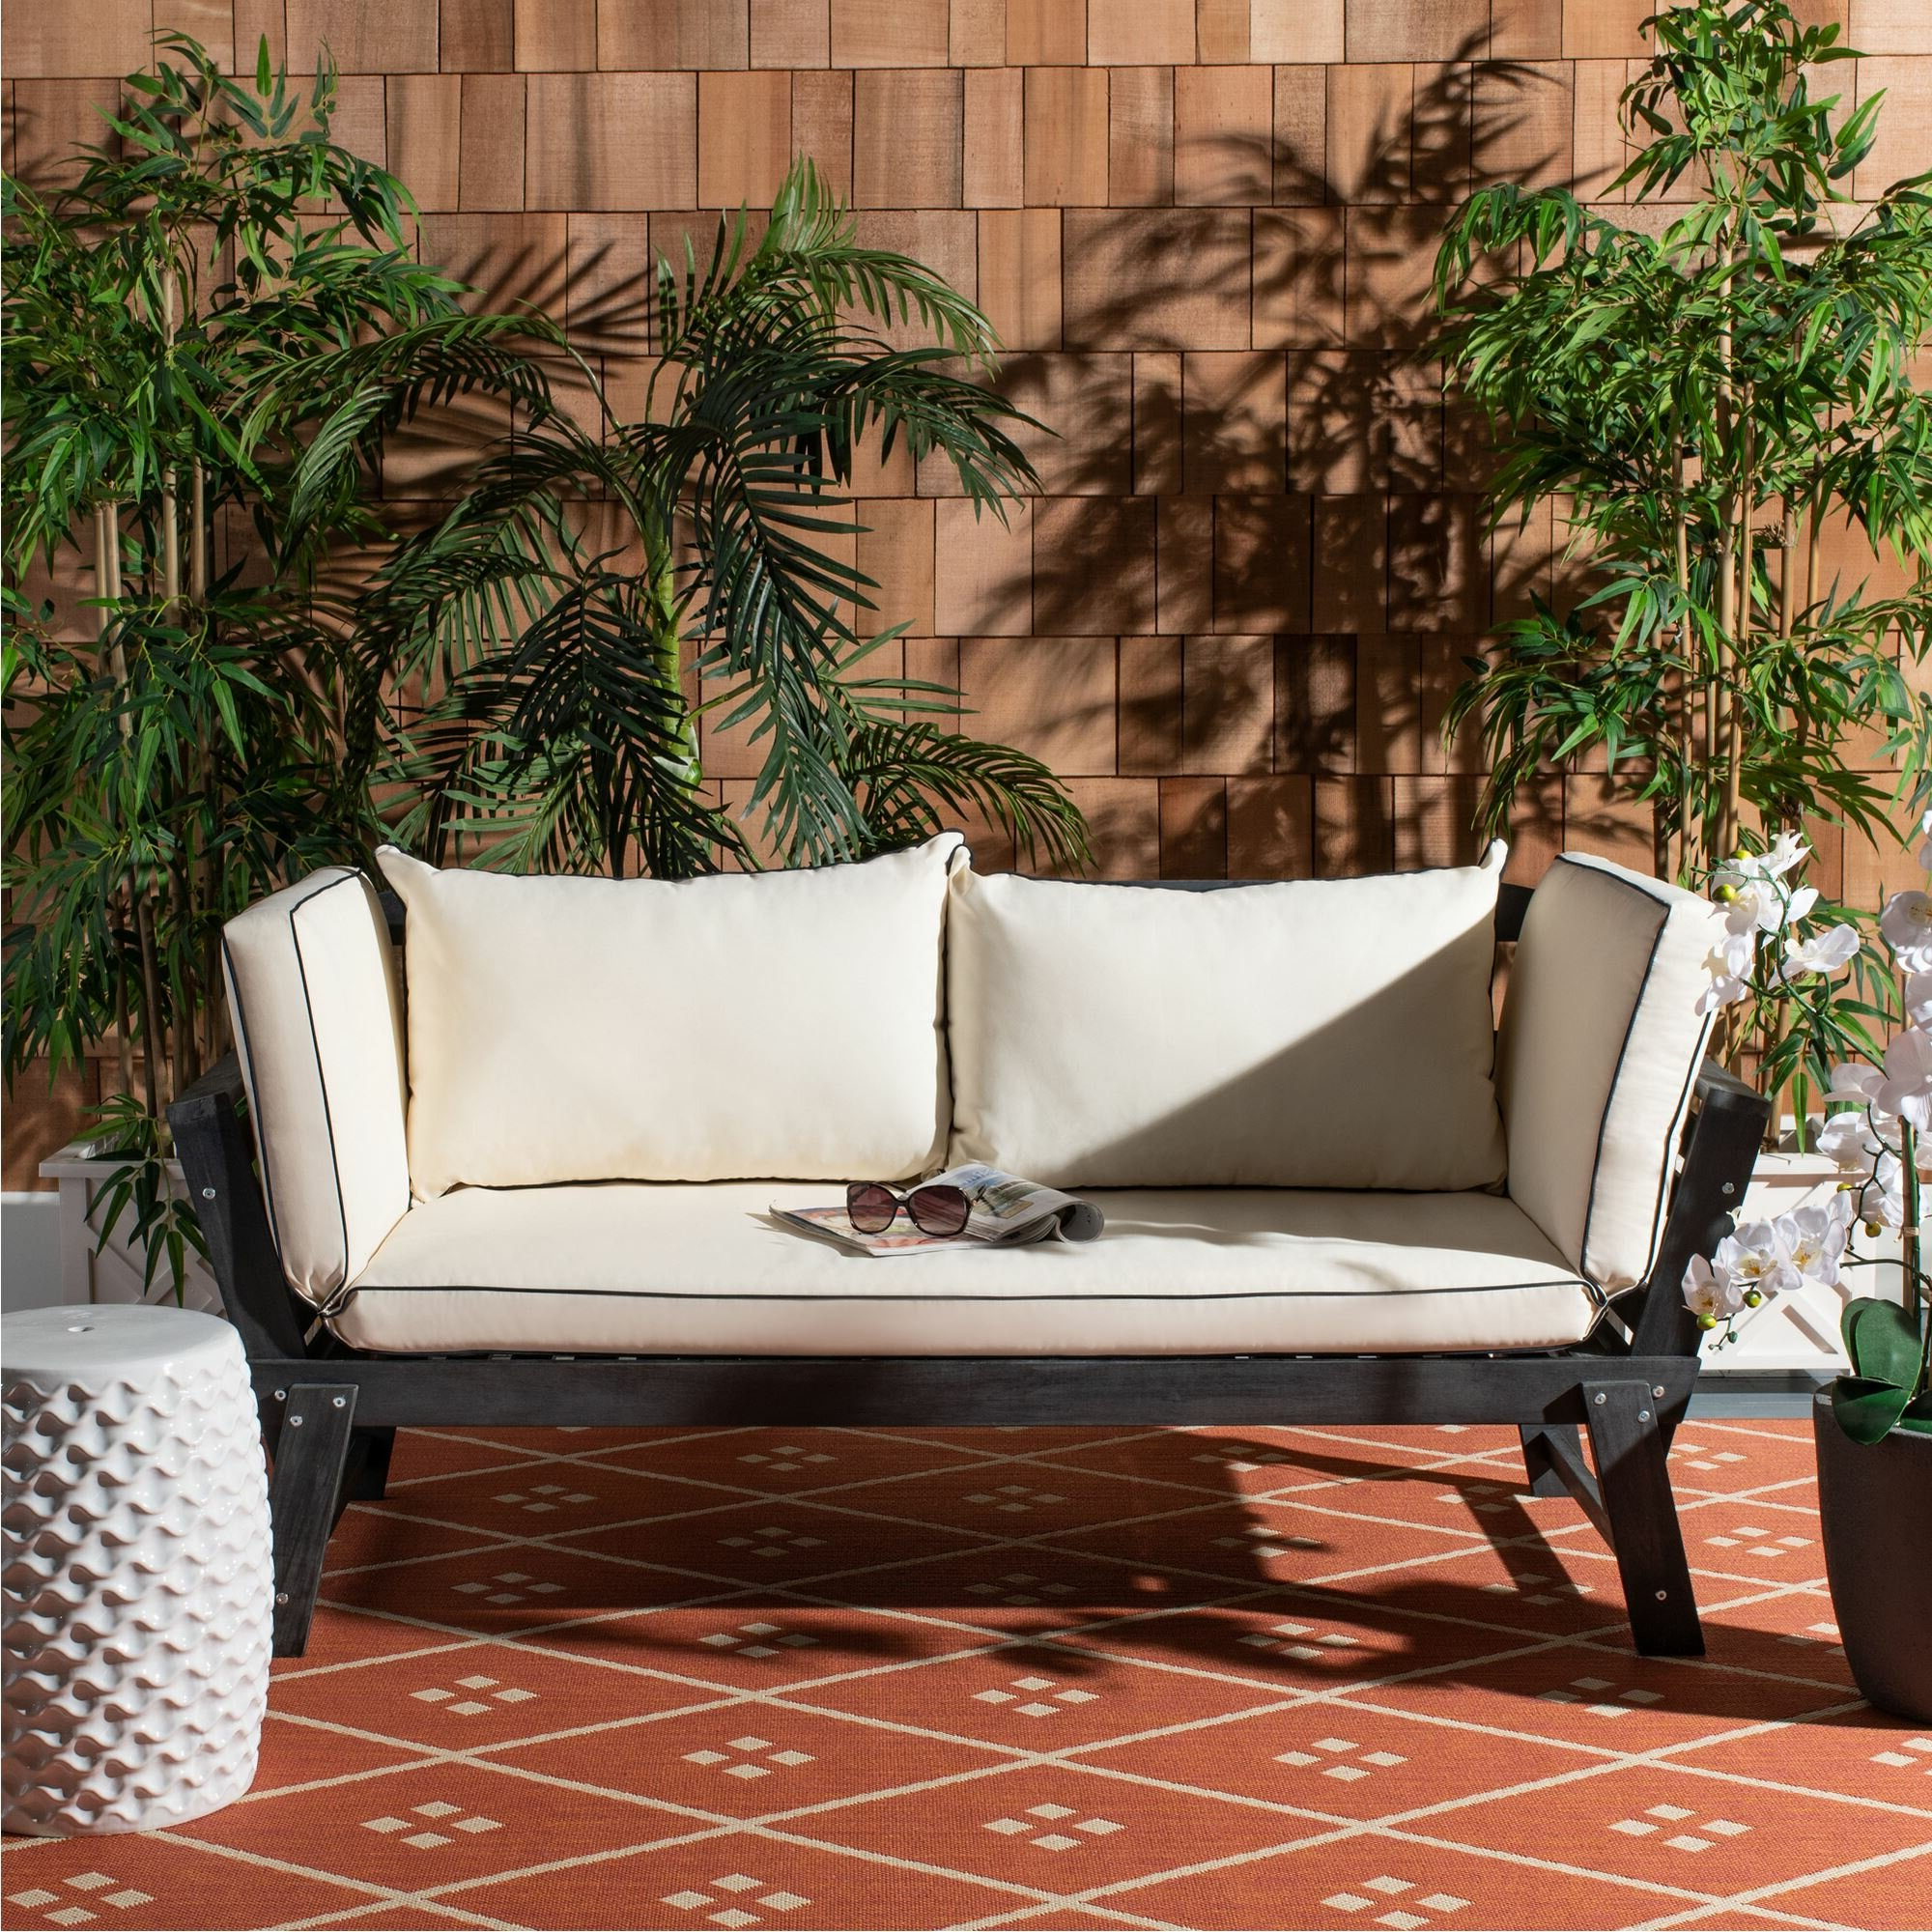 Birch Lane™ Heritage Beal Patio Daybed With Cushions Within Most Popular Beal Patio Daybeds With Cushions (View 10 of 25)